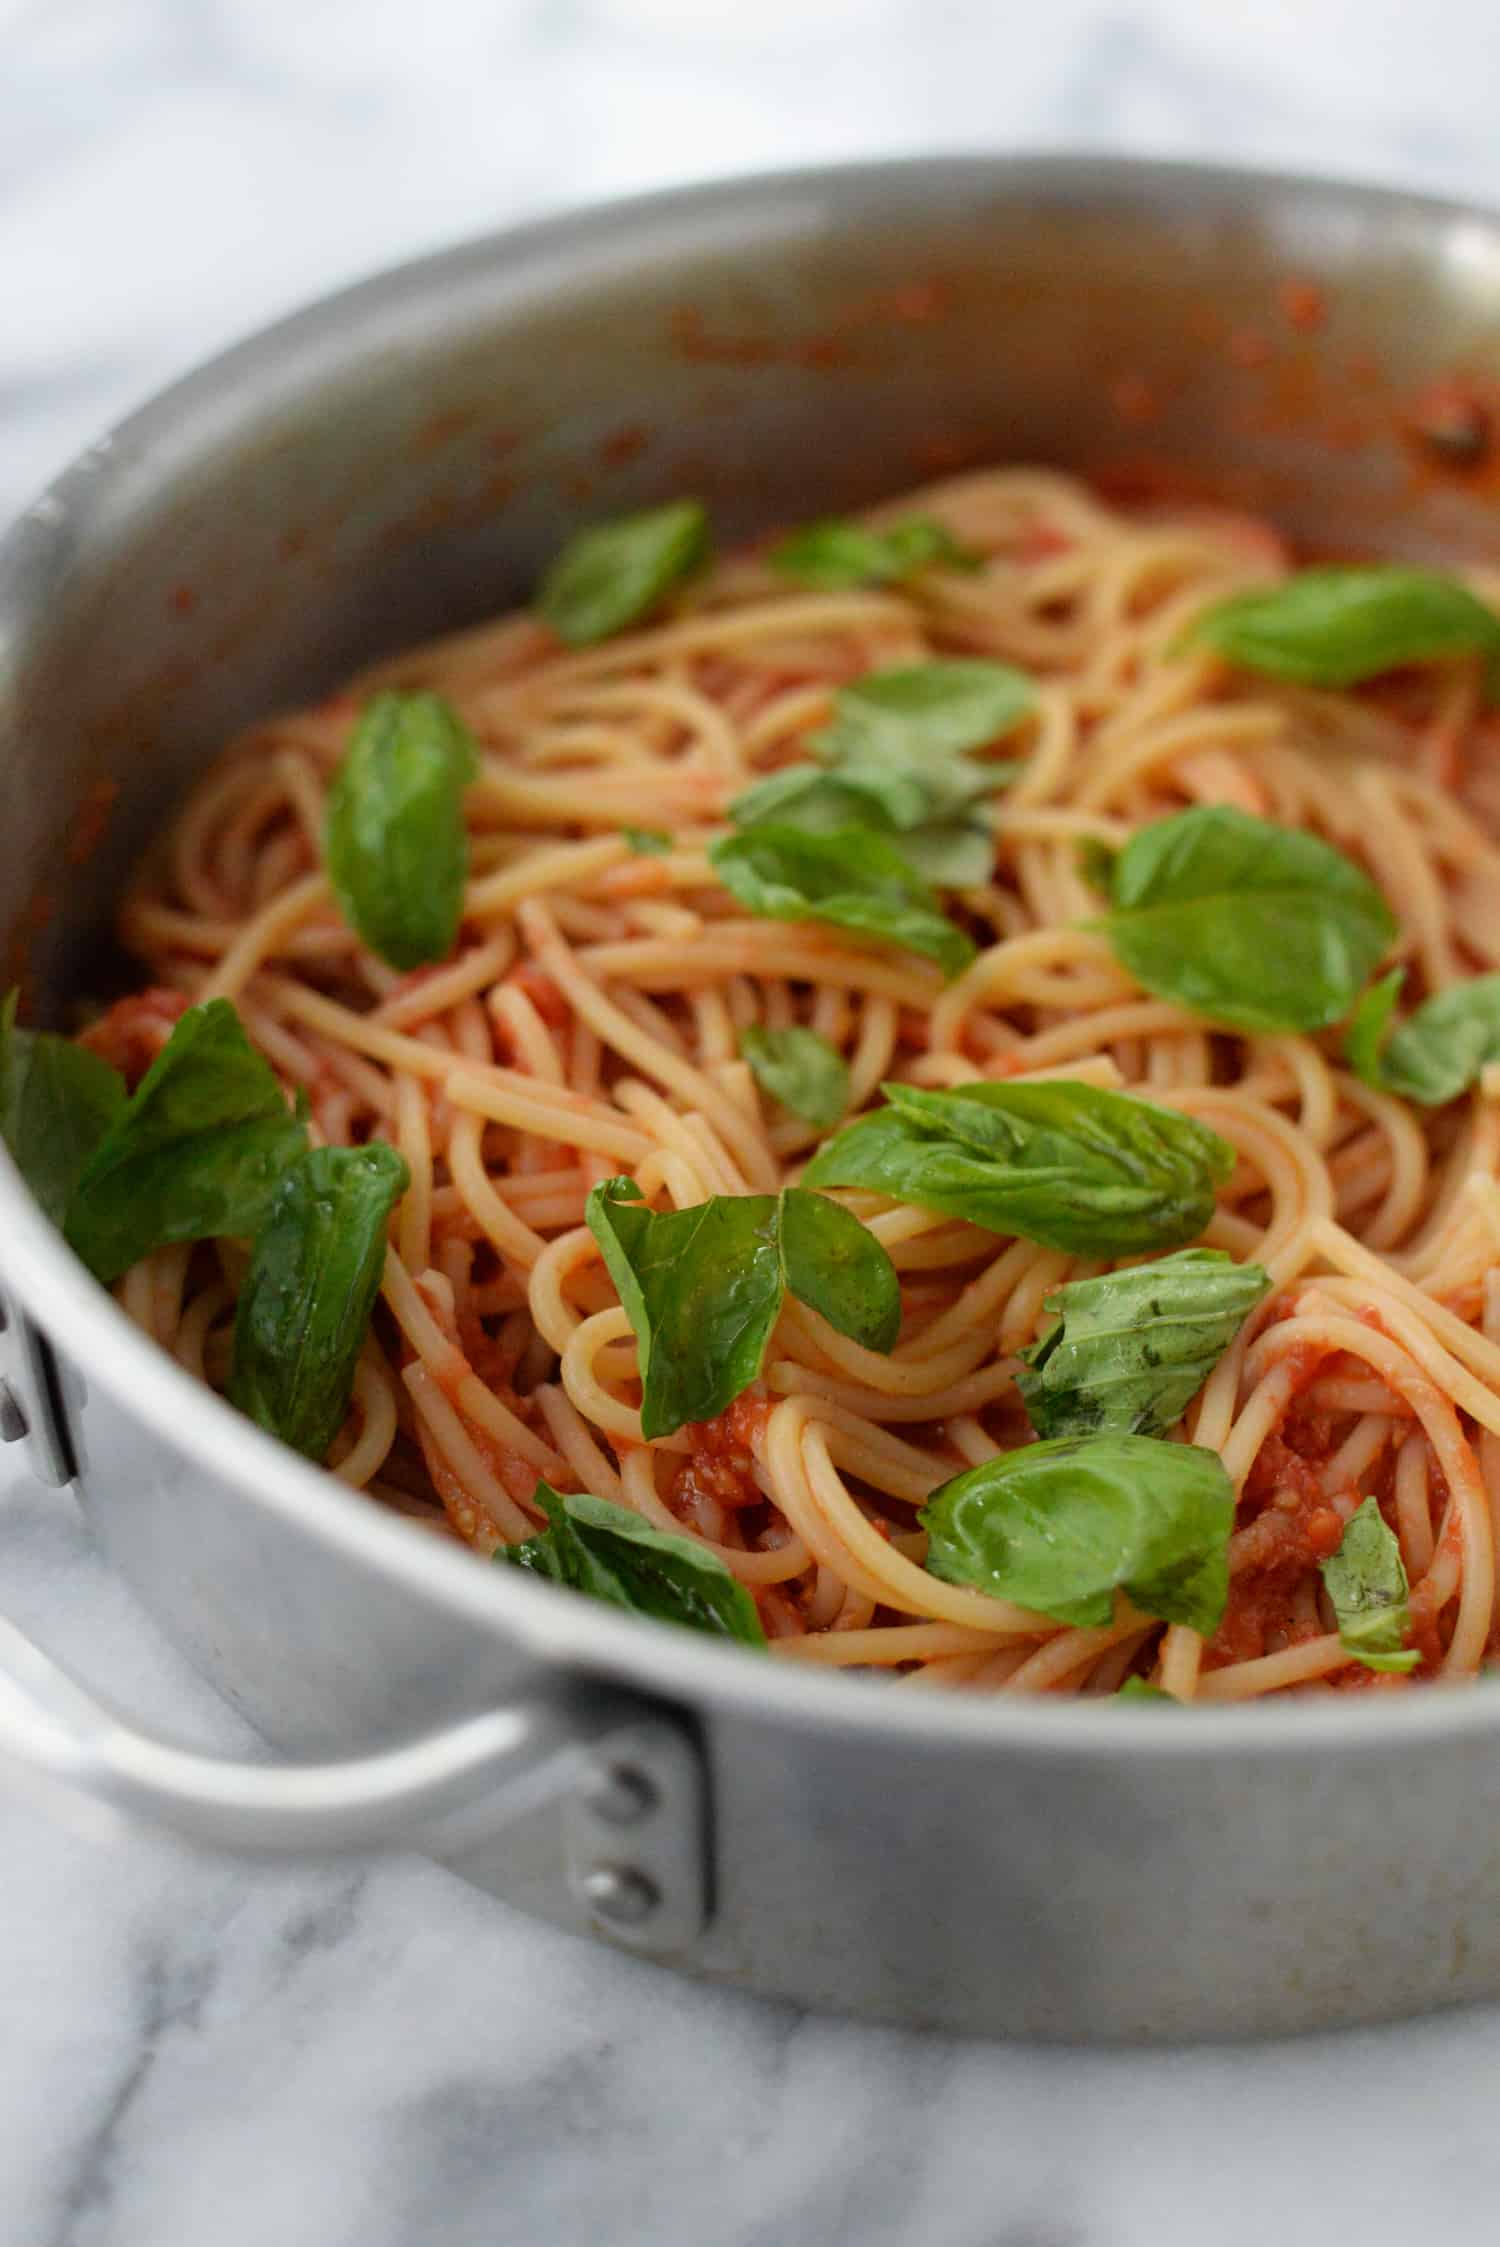 Fresh Tomato Sauce with Spaghetti! This cheaters pomodoro is the only recipe you need for summer tomatoes! A trick for perfect tomato sauce without any fancy tools. Ready in just 20 minutes! Vegan and vegetarian. | www.delishknowledge.com